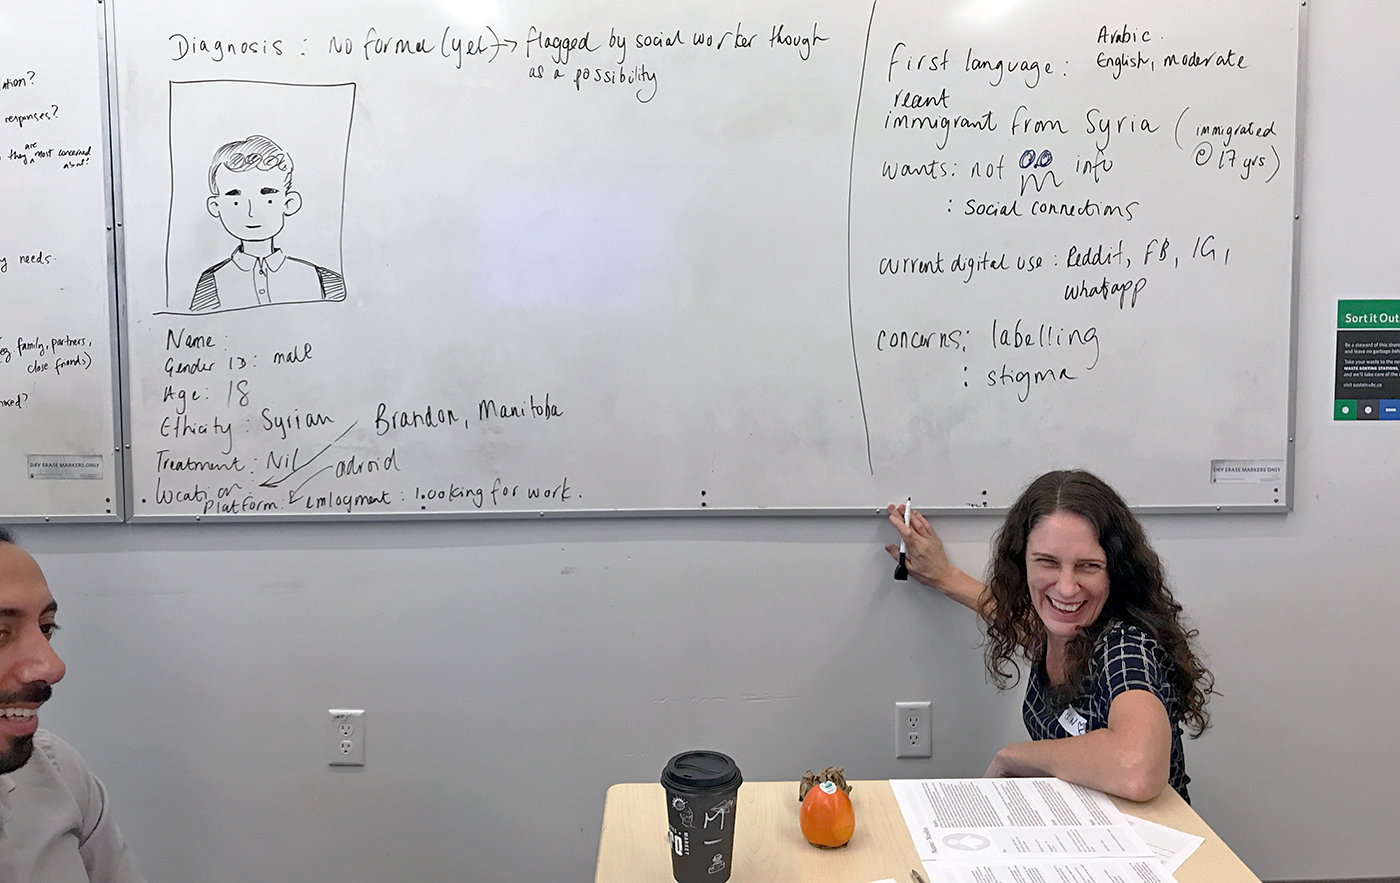 Erin does some whiteboarding while Aidin smiles. She's filling out a persona template for an 18-year old Syrian immigrant.